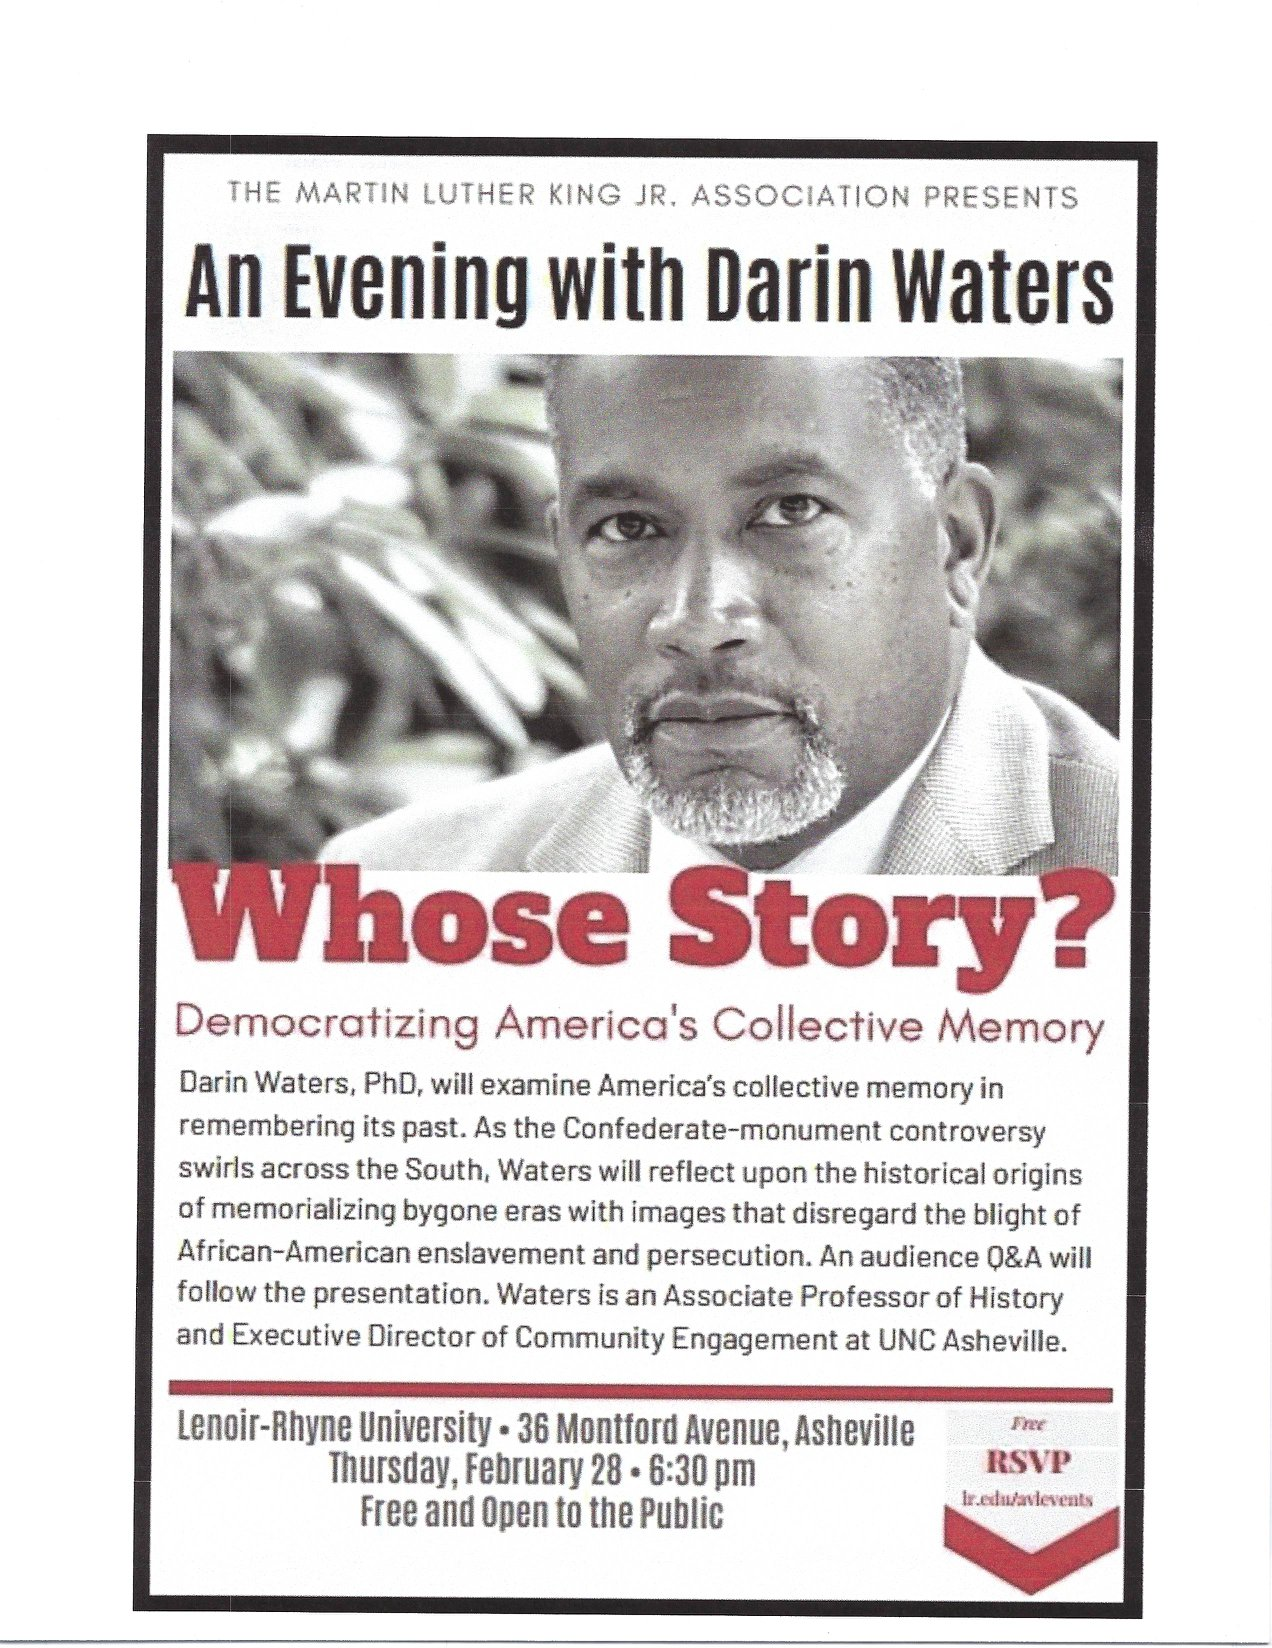 Whose Story - An Evening with Darin Waters